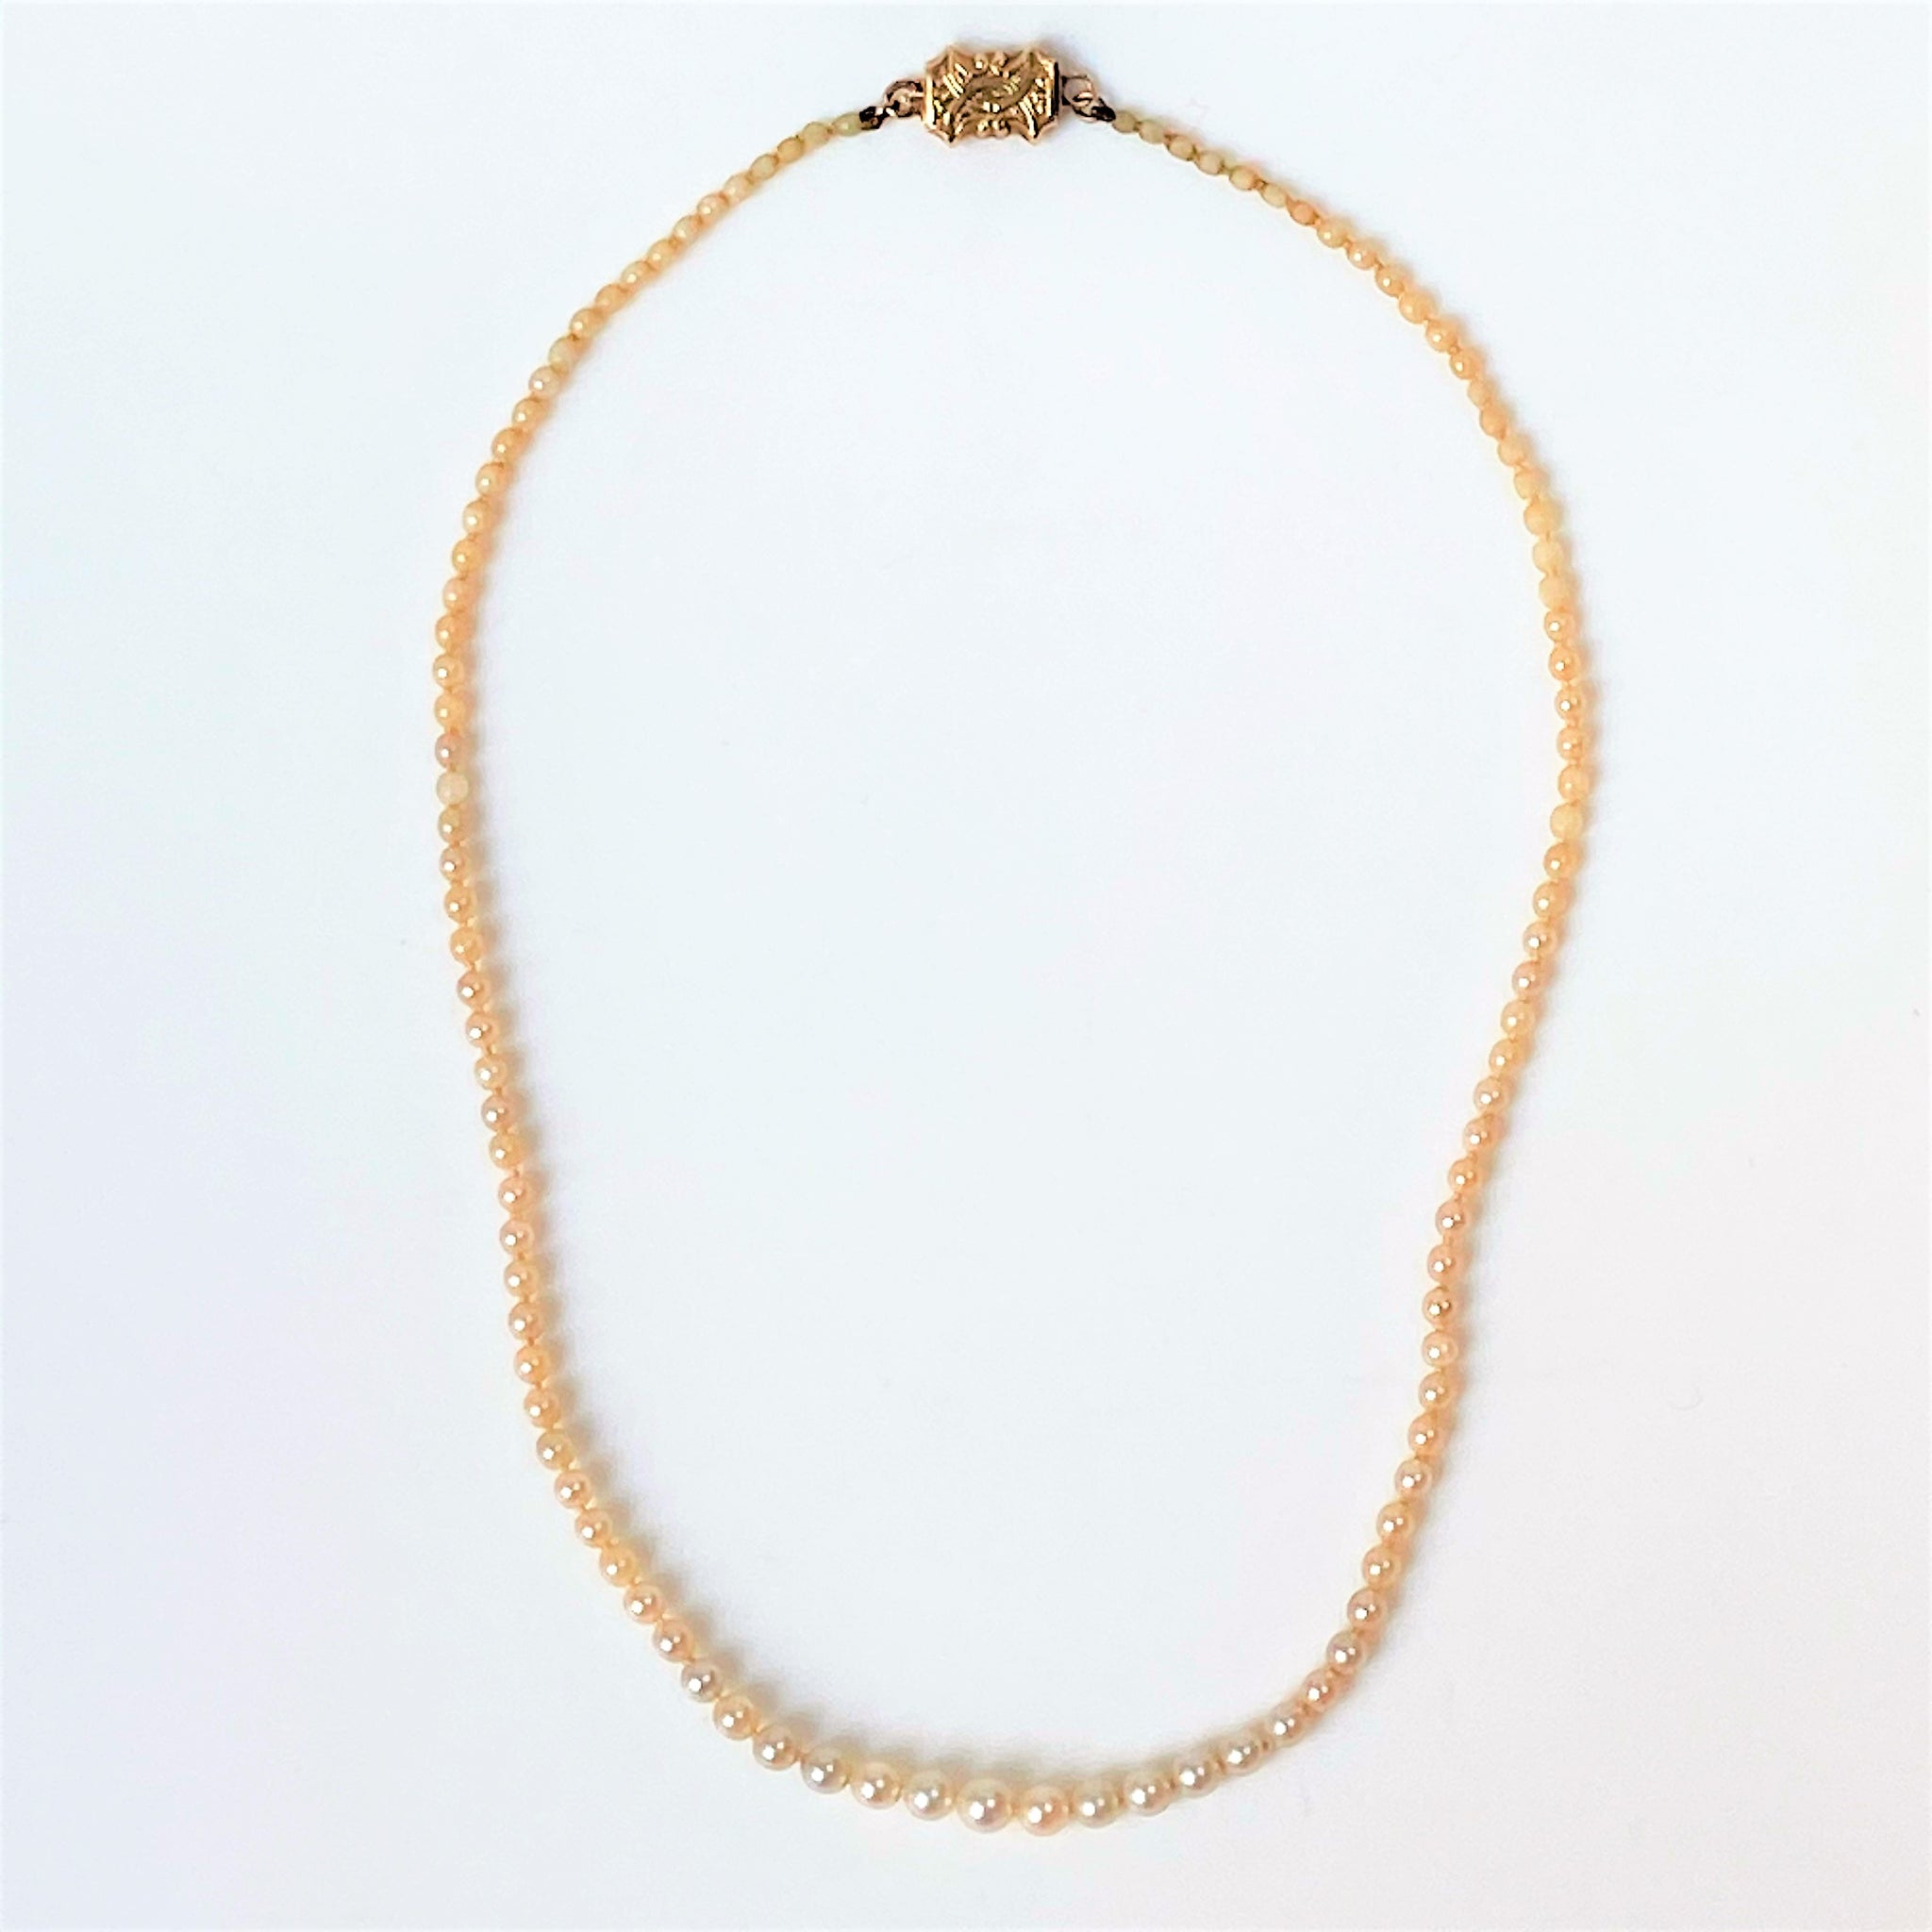 Graduated Cultured Pearl Necklace with 14ct Gold Clasp